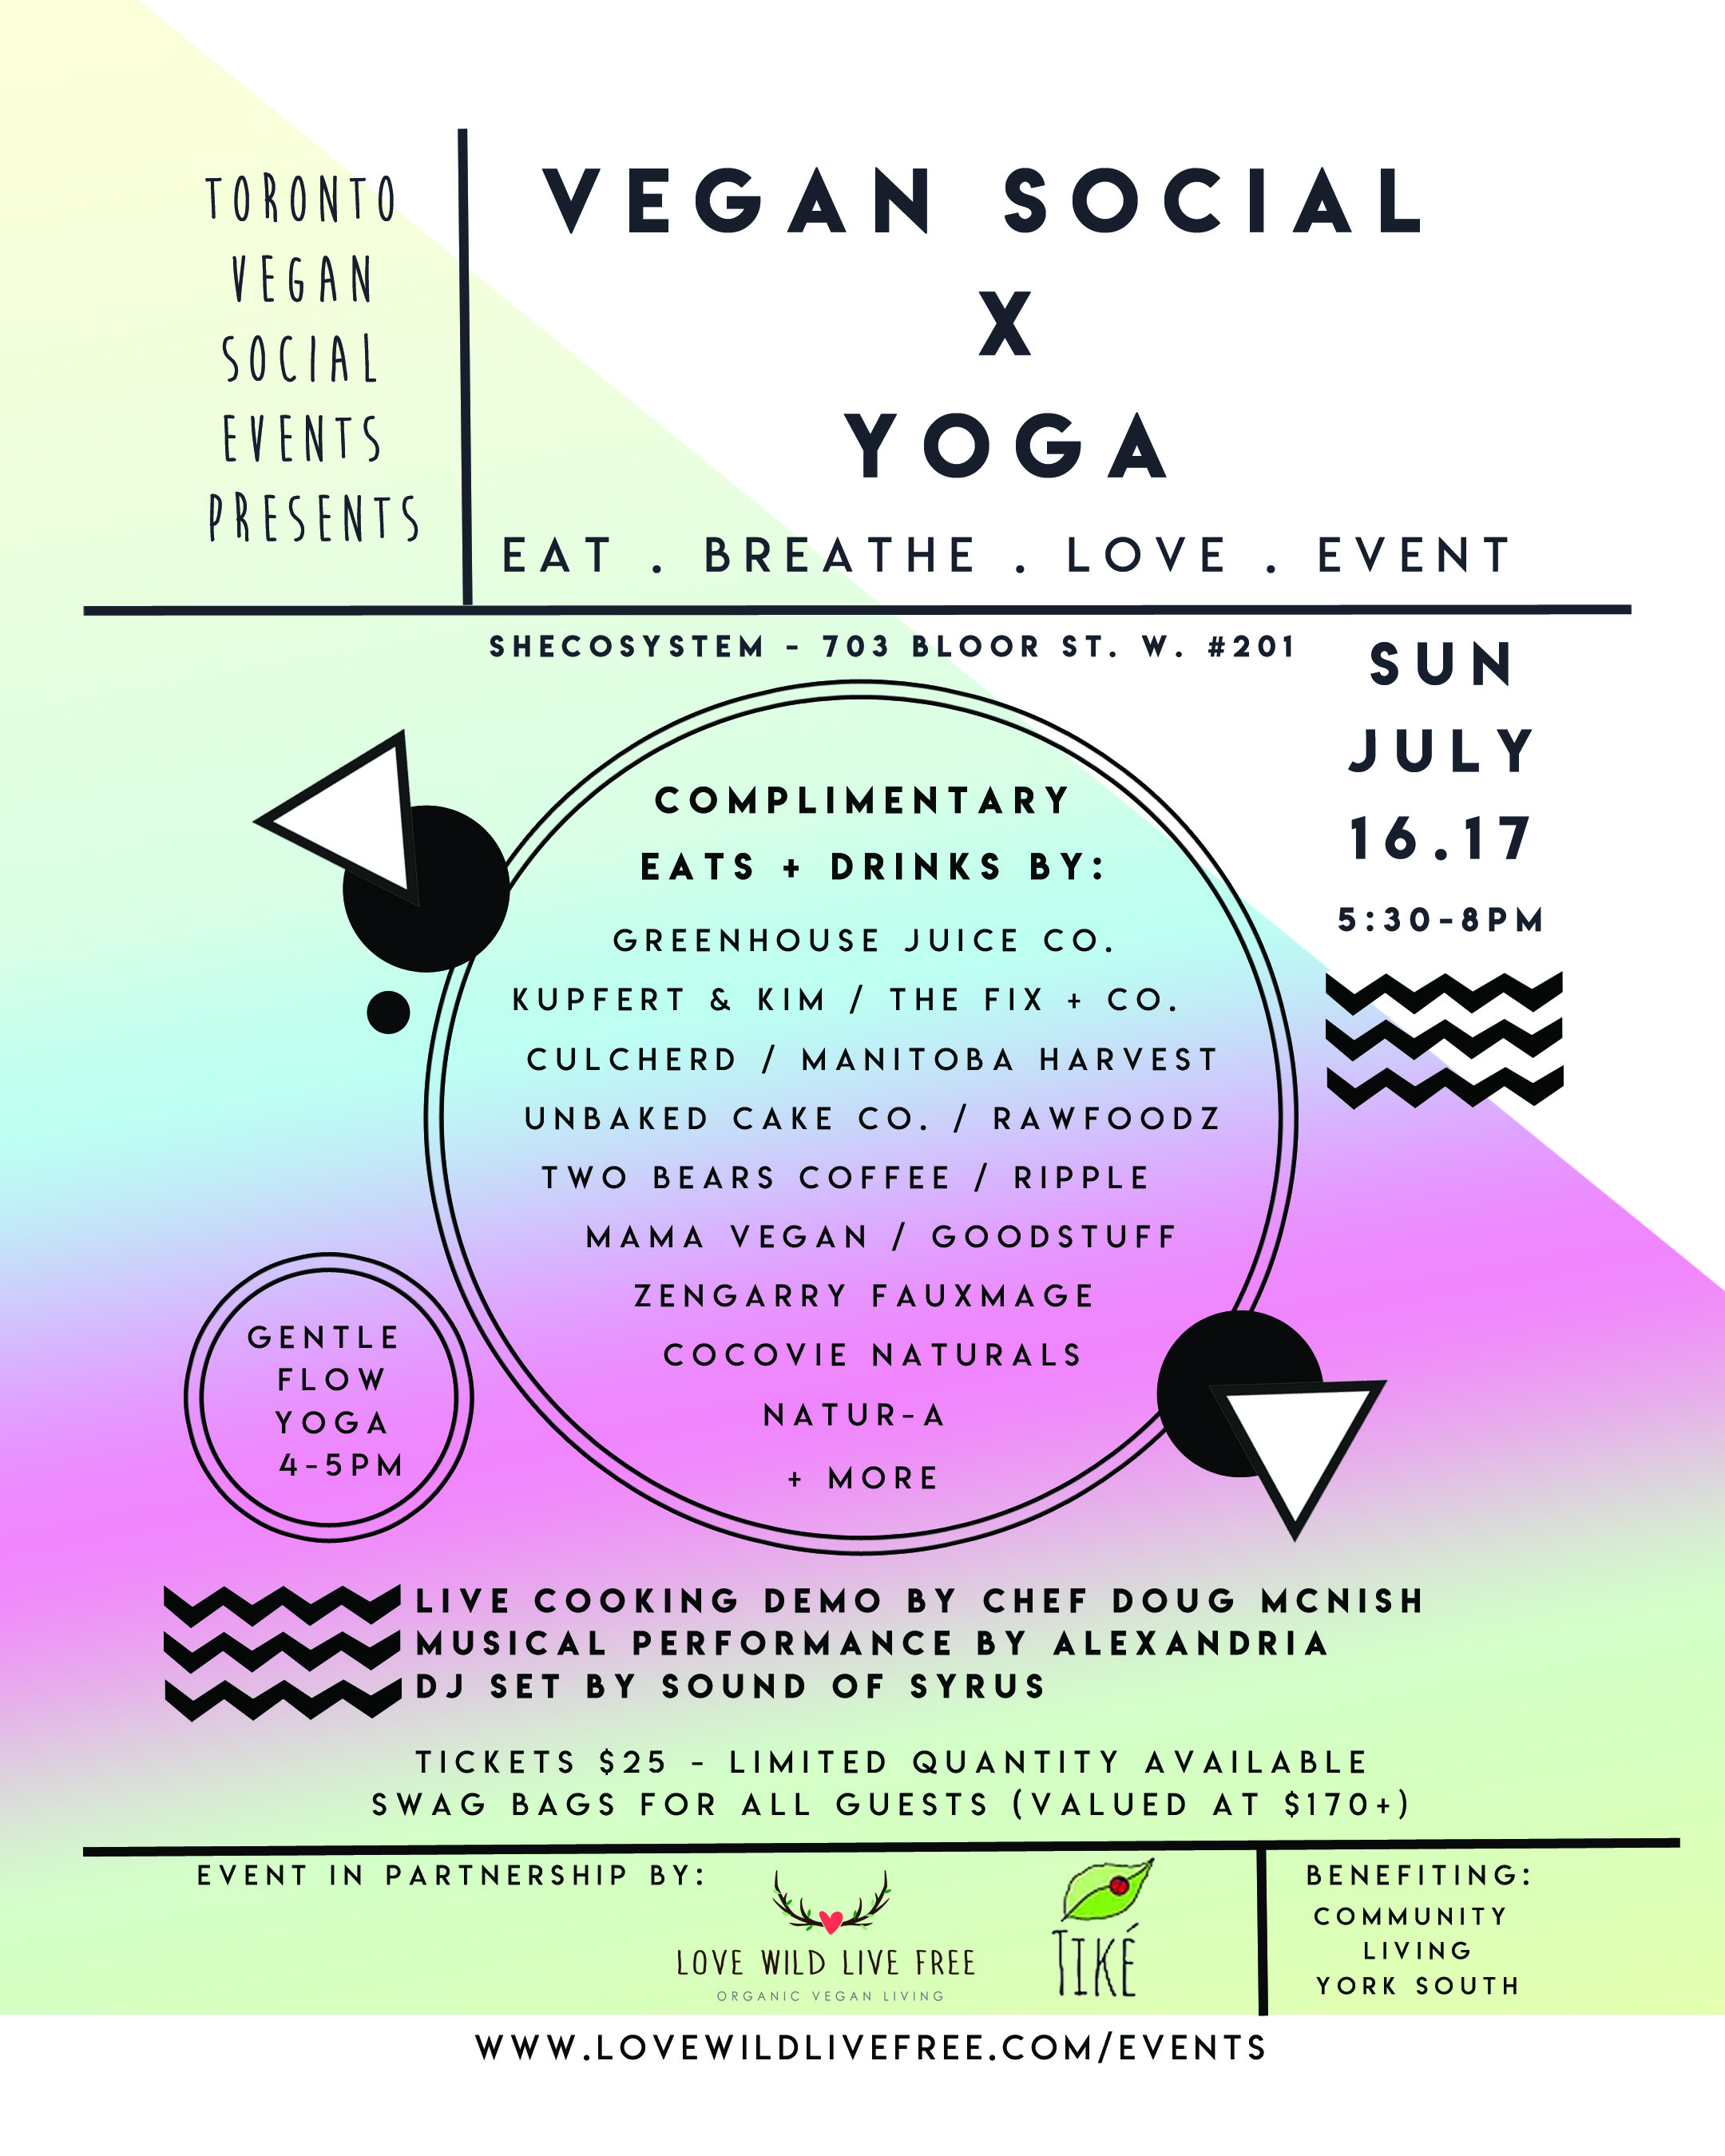 Yoga + Toronto Vegan Social Event - Eat. Breathe. Love. - Sunday, July 16, 2017EVENT DETAILS click here and TICKETS click here!